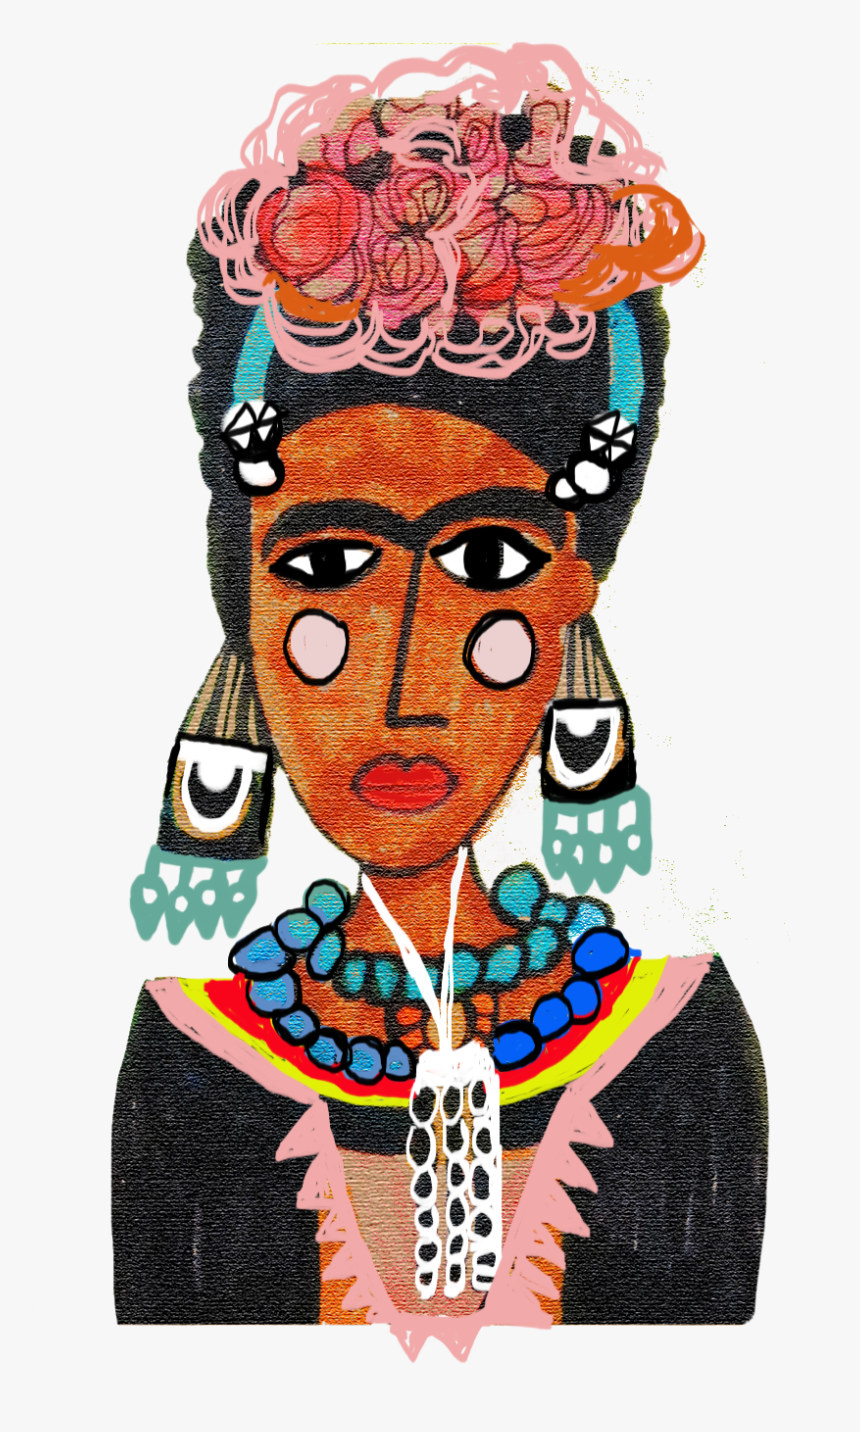 Frida Self Portrait Illustration By Happygraff - Frida Kahlo, HD Png Download, Free Download